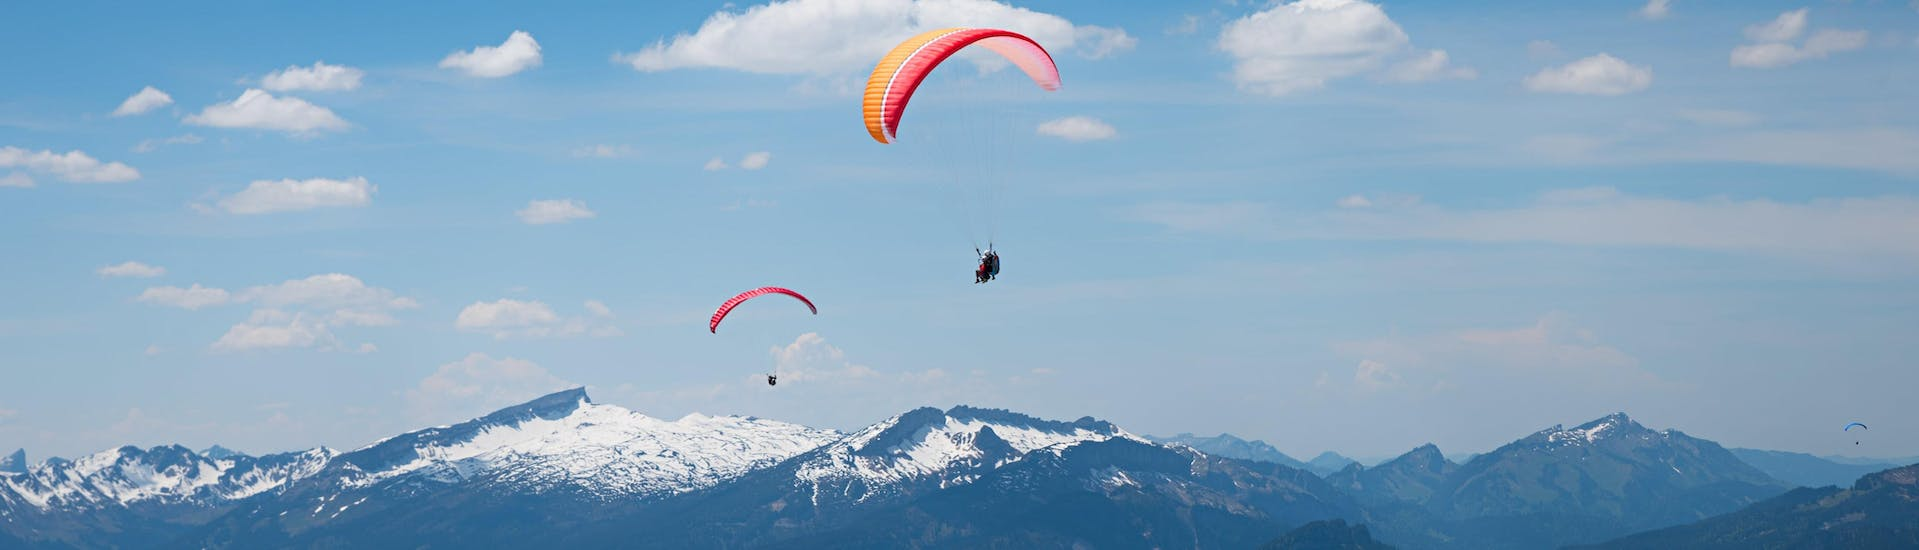 A tandem master and his passenger are sailing through cloudy skies while paragliding in Oberstdorf.